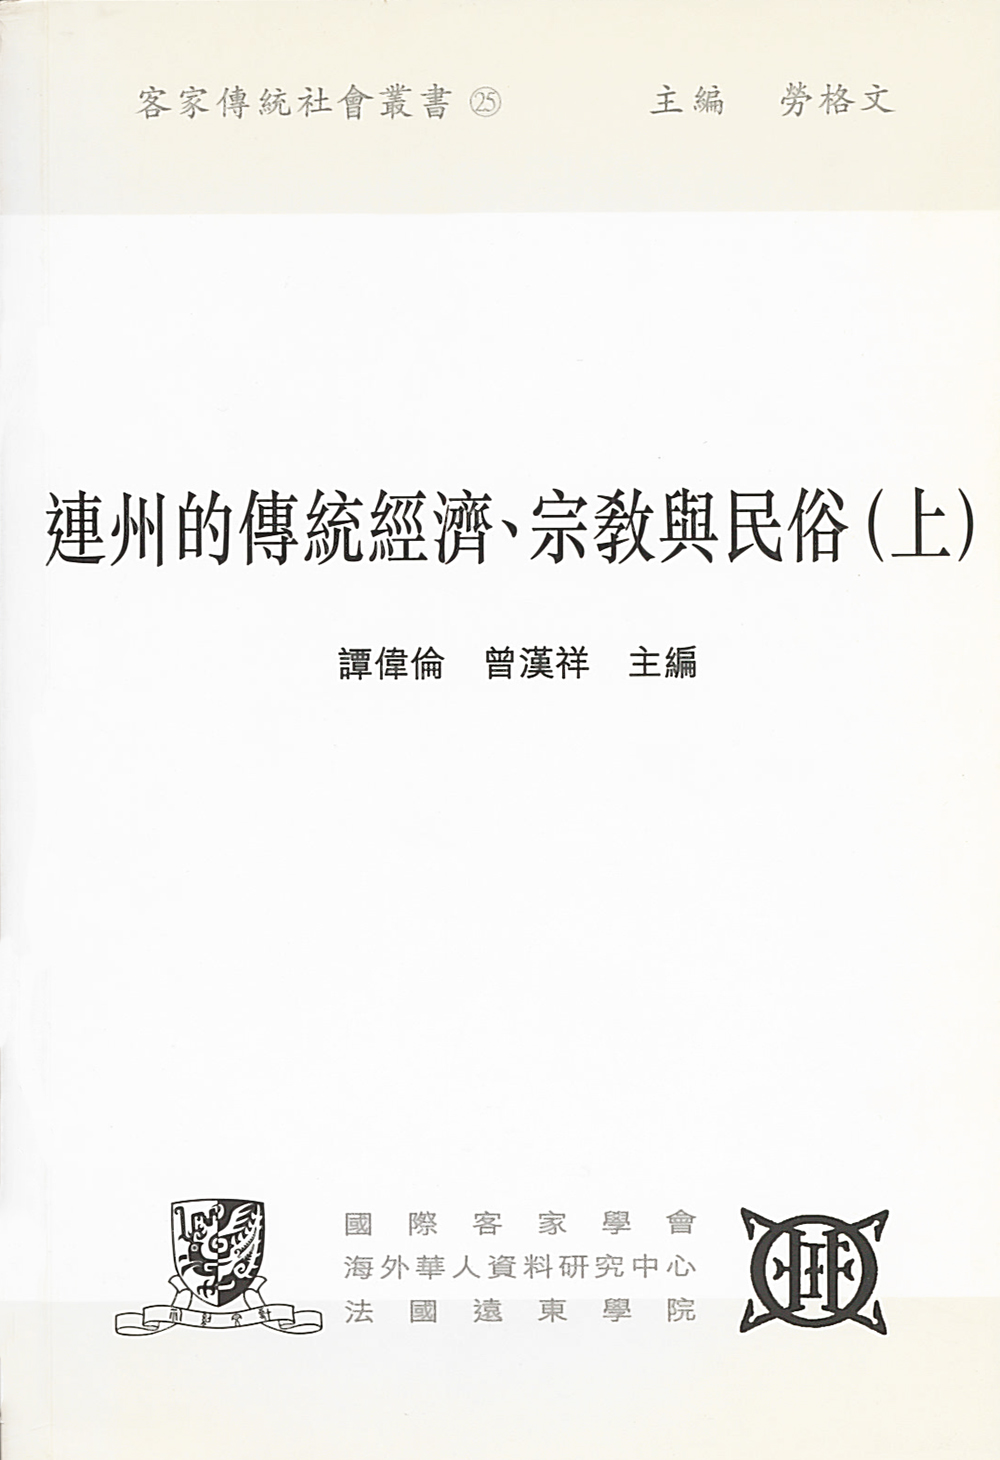 Lianzhou de chuan tong jing ji, zong jiao yu min su (shang) = The traditional Economy, Religion and Customs in Lianzhou (volume 1)